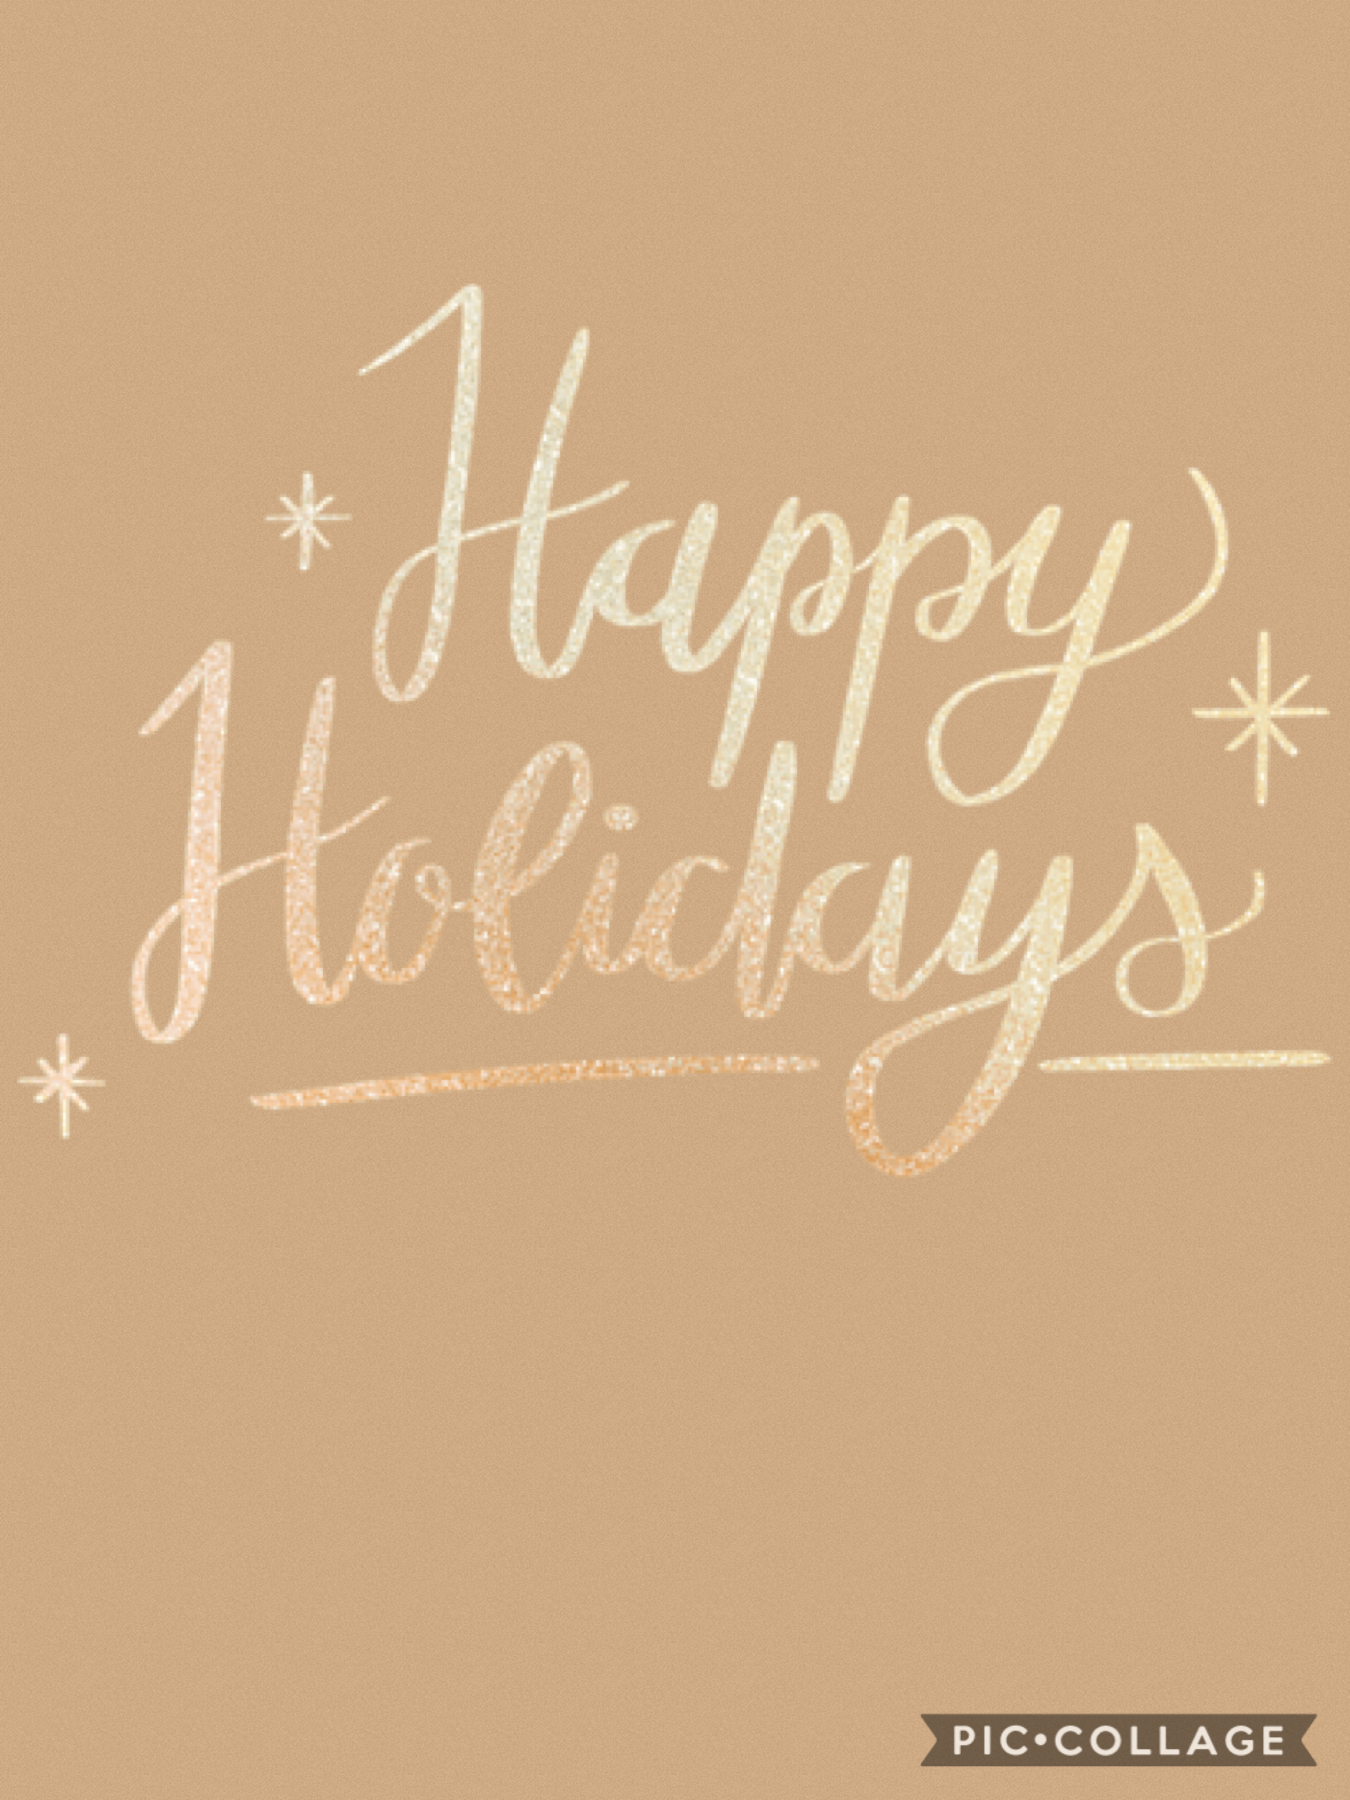 Happy Holidays to whatever you celebrate!